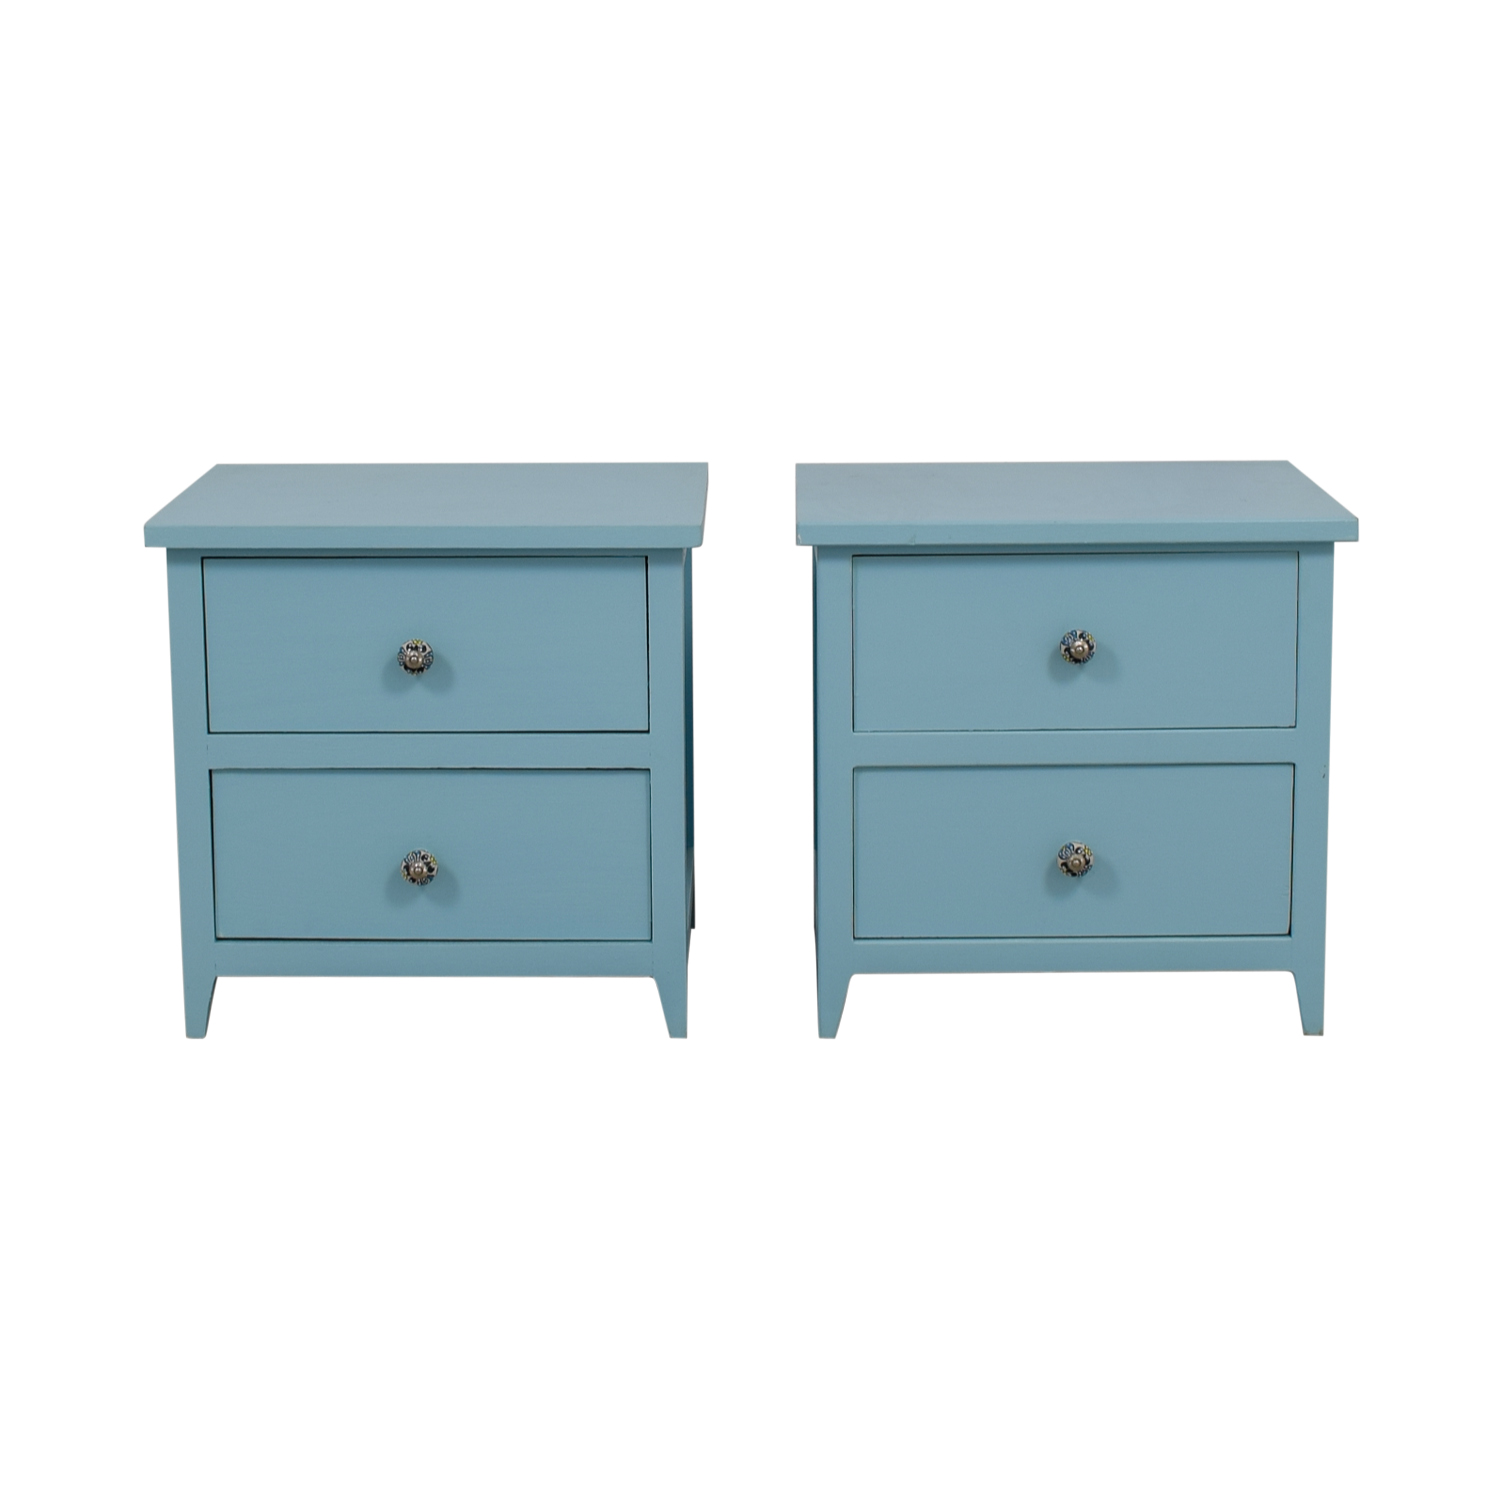 Gothic Cabinet Craft Gothic Cabinet Craft Light Blue Wood Two-Drawer Night Stands used